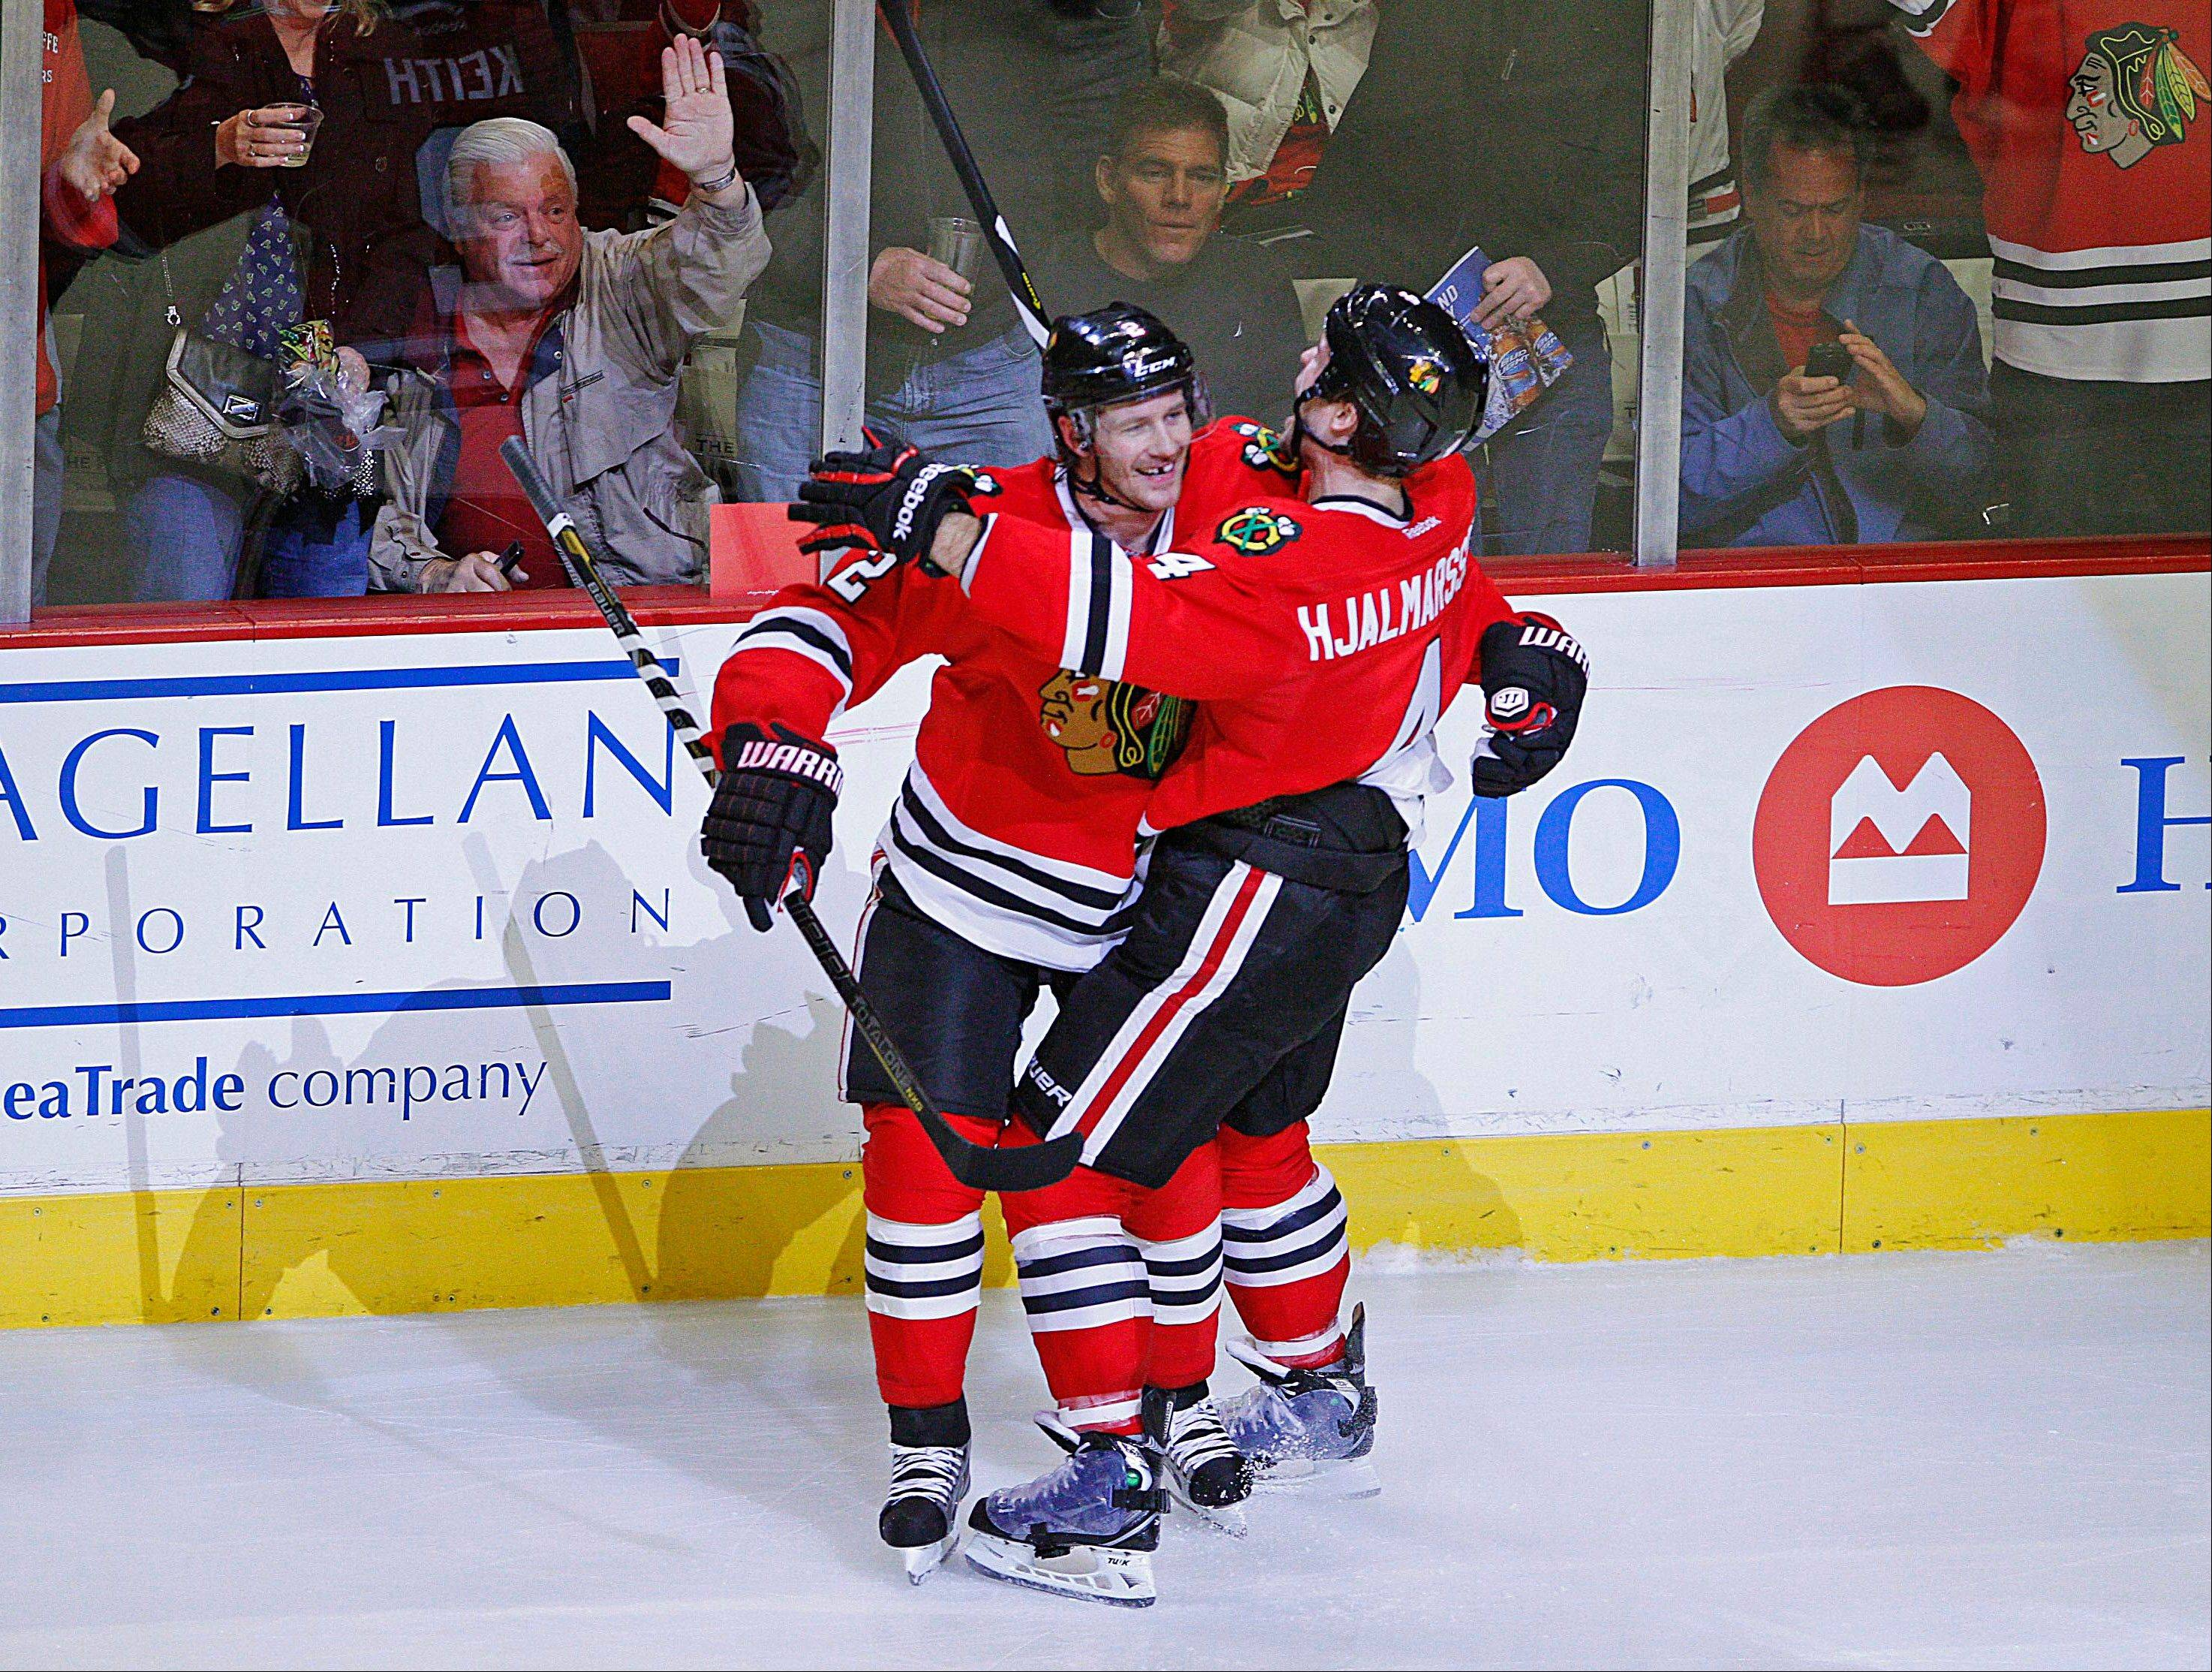 Chicago Blackhawks' Duncan Keith , left, and Niklas Hjalmarsson hug after Hjalmarrsson scored against the Dallas Stars during the third period in an NHL hockey game in Chicago, Monday, April 15, 2013. The Blackhawks won 5-2.